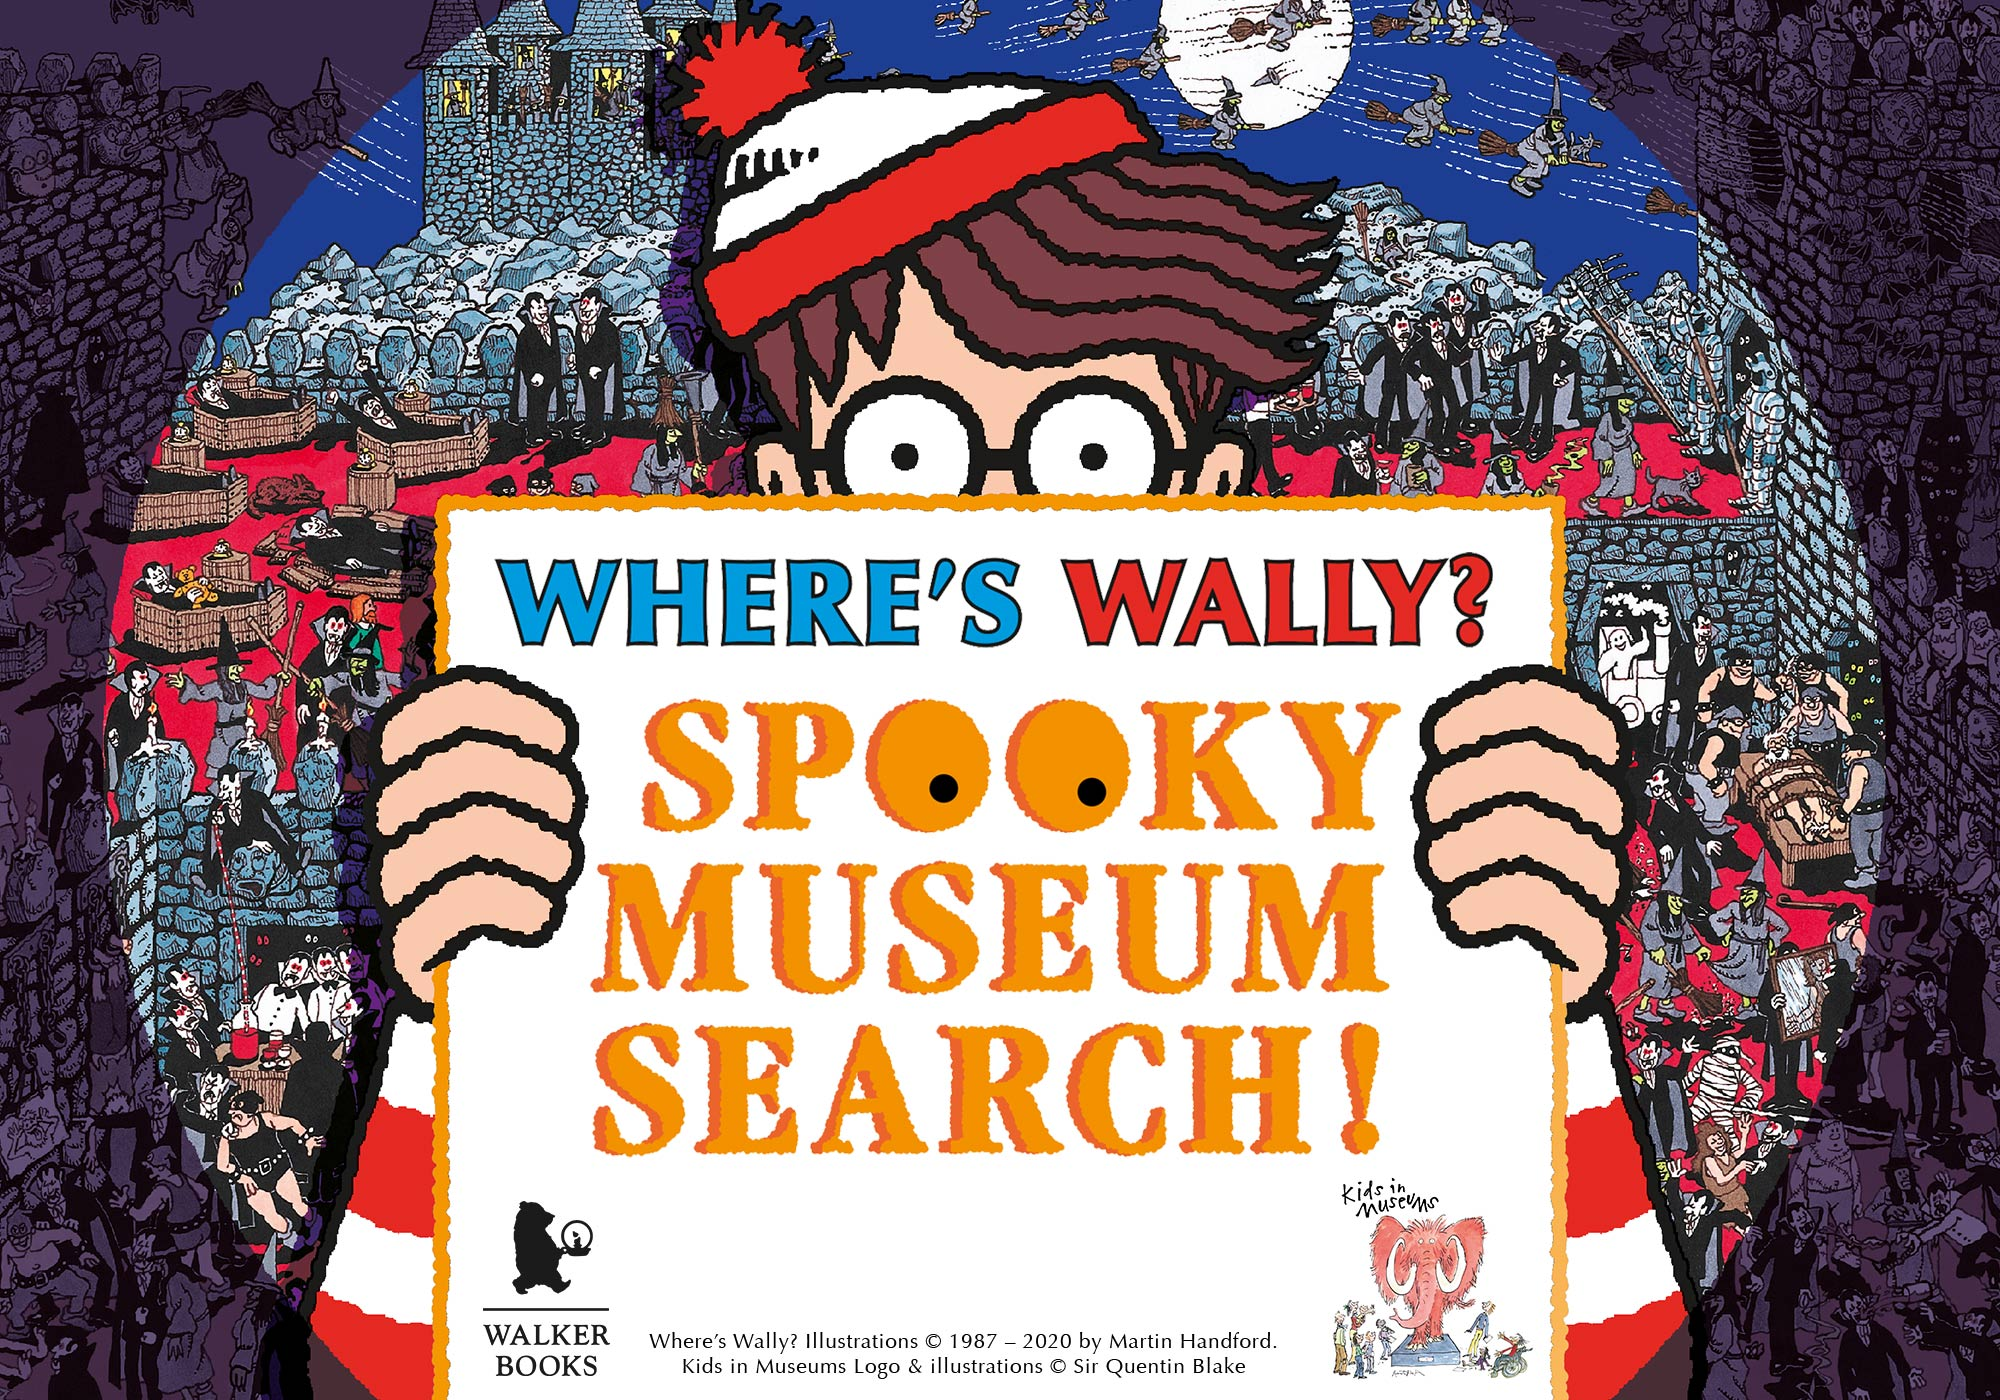 Where's Wally? Spooky Museum Search at Roman Baths